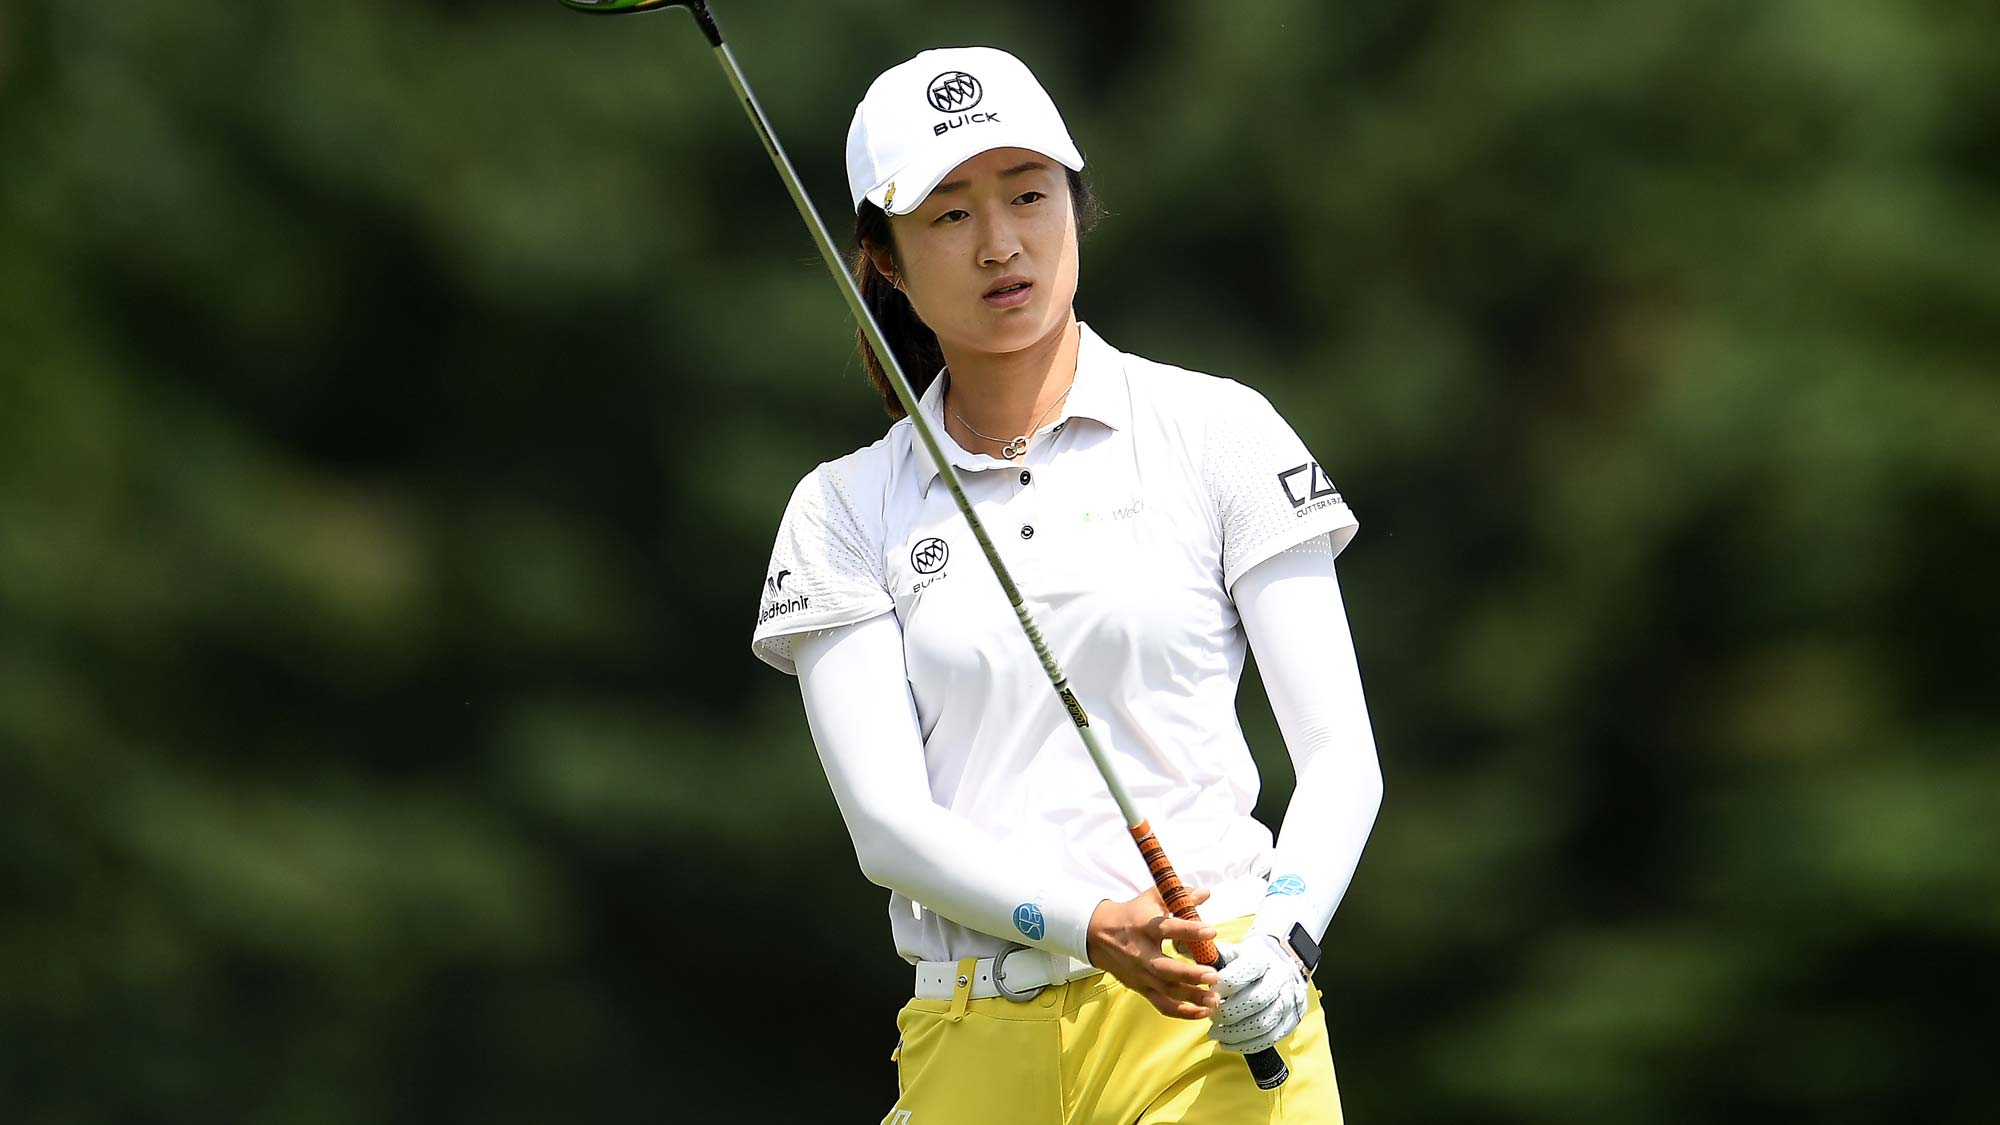 Yu Liu of China hits her tee shot on the ninth hole during the first round of the Thornberry Creek LPGA Classic